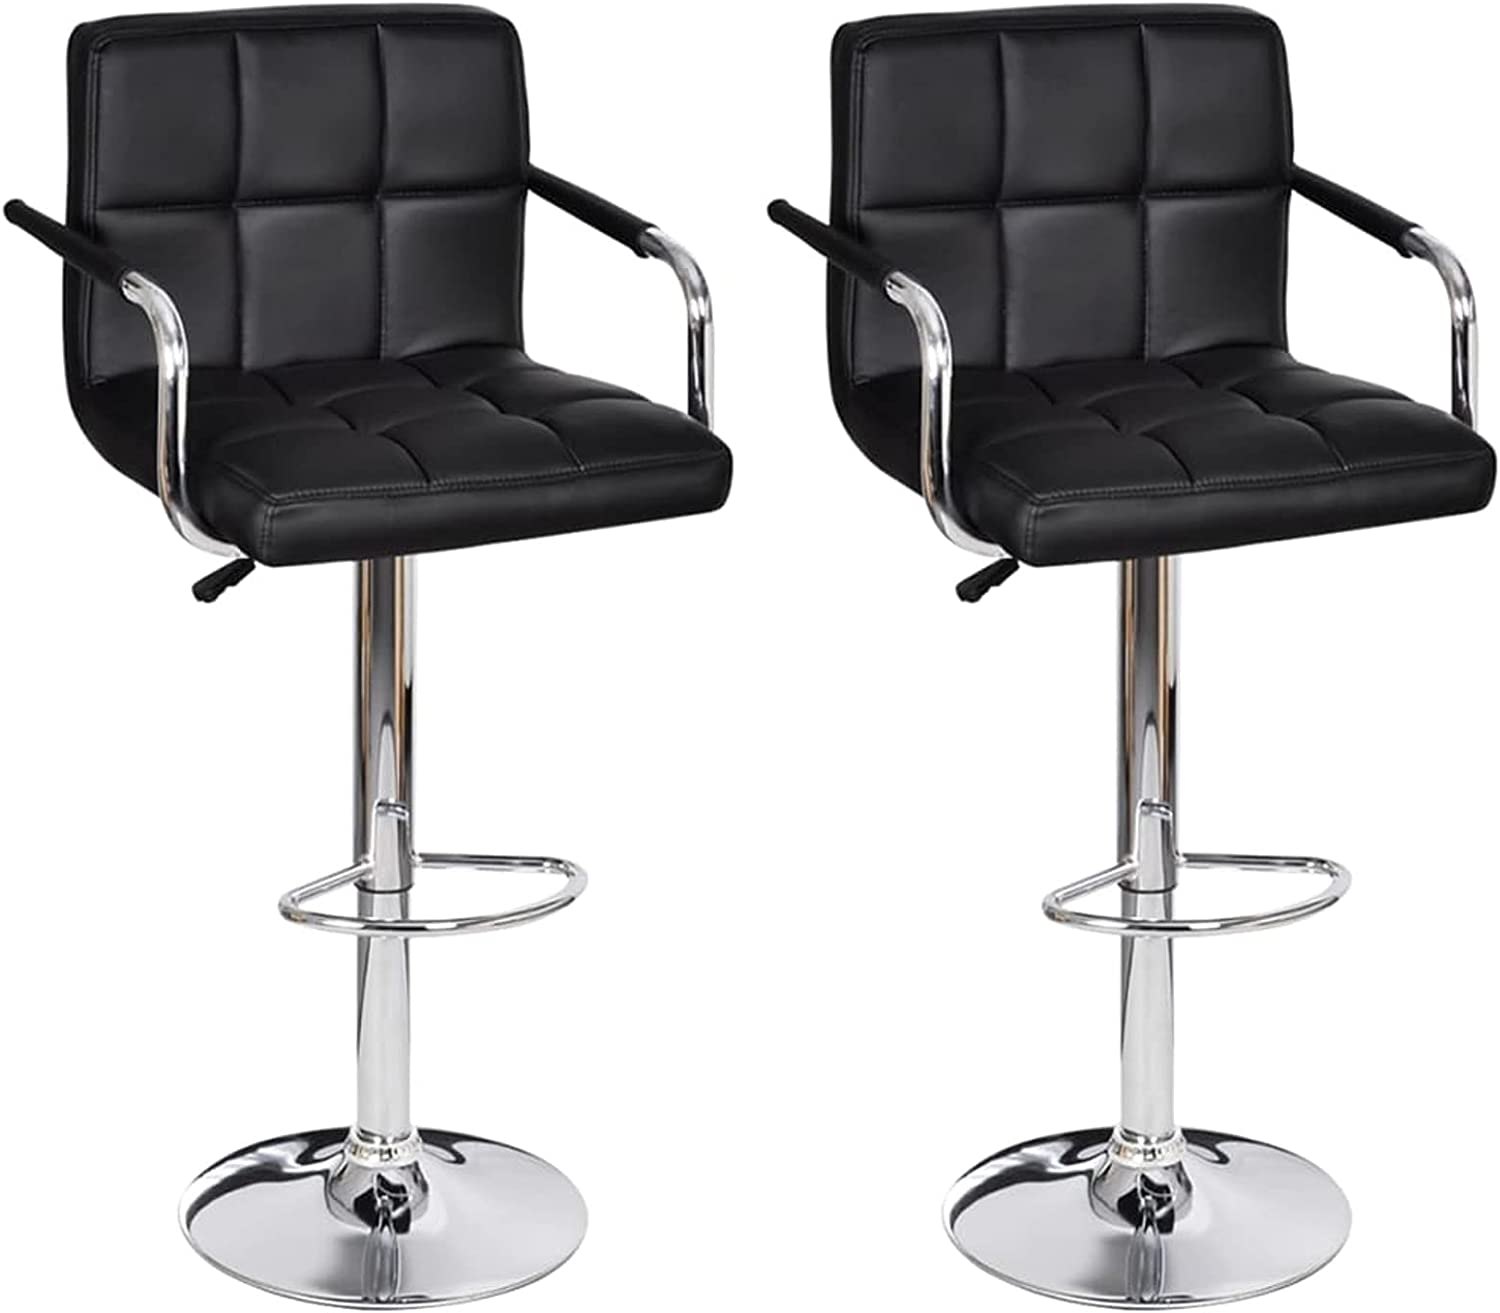 Tidyard 2 Piece Bar Free shipping on posting reviews El Paso Mall Stools Adjustable Faux Height Barsto Leather